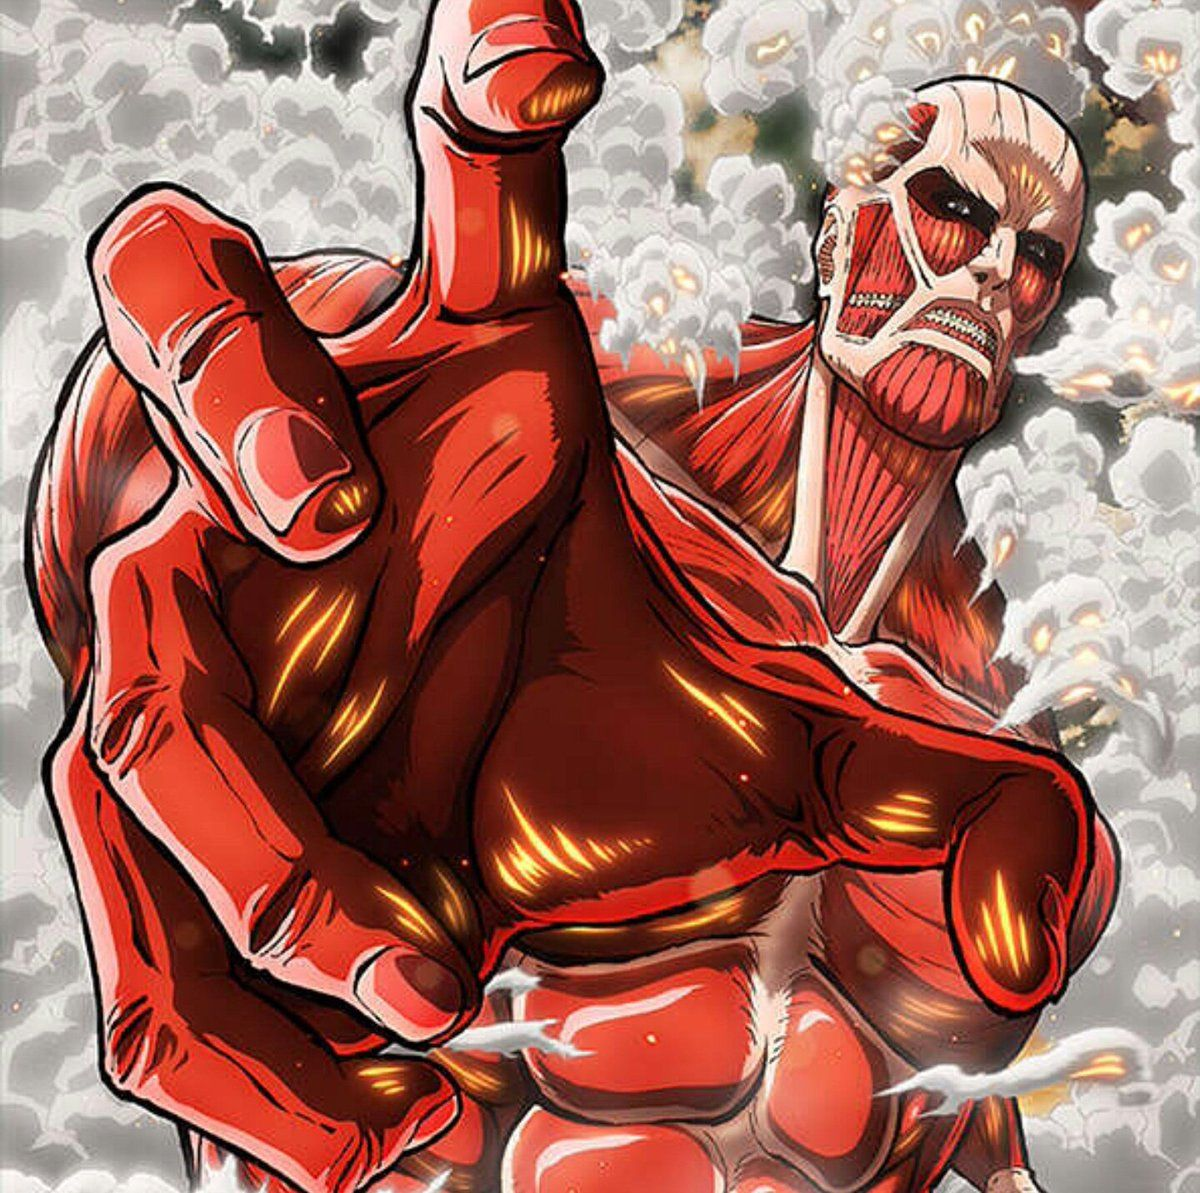 For all you anime fans, this is for you! Embedded | Attack on titan art, Attack on titan anime ...